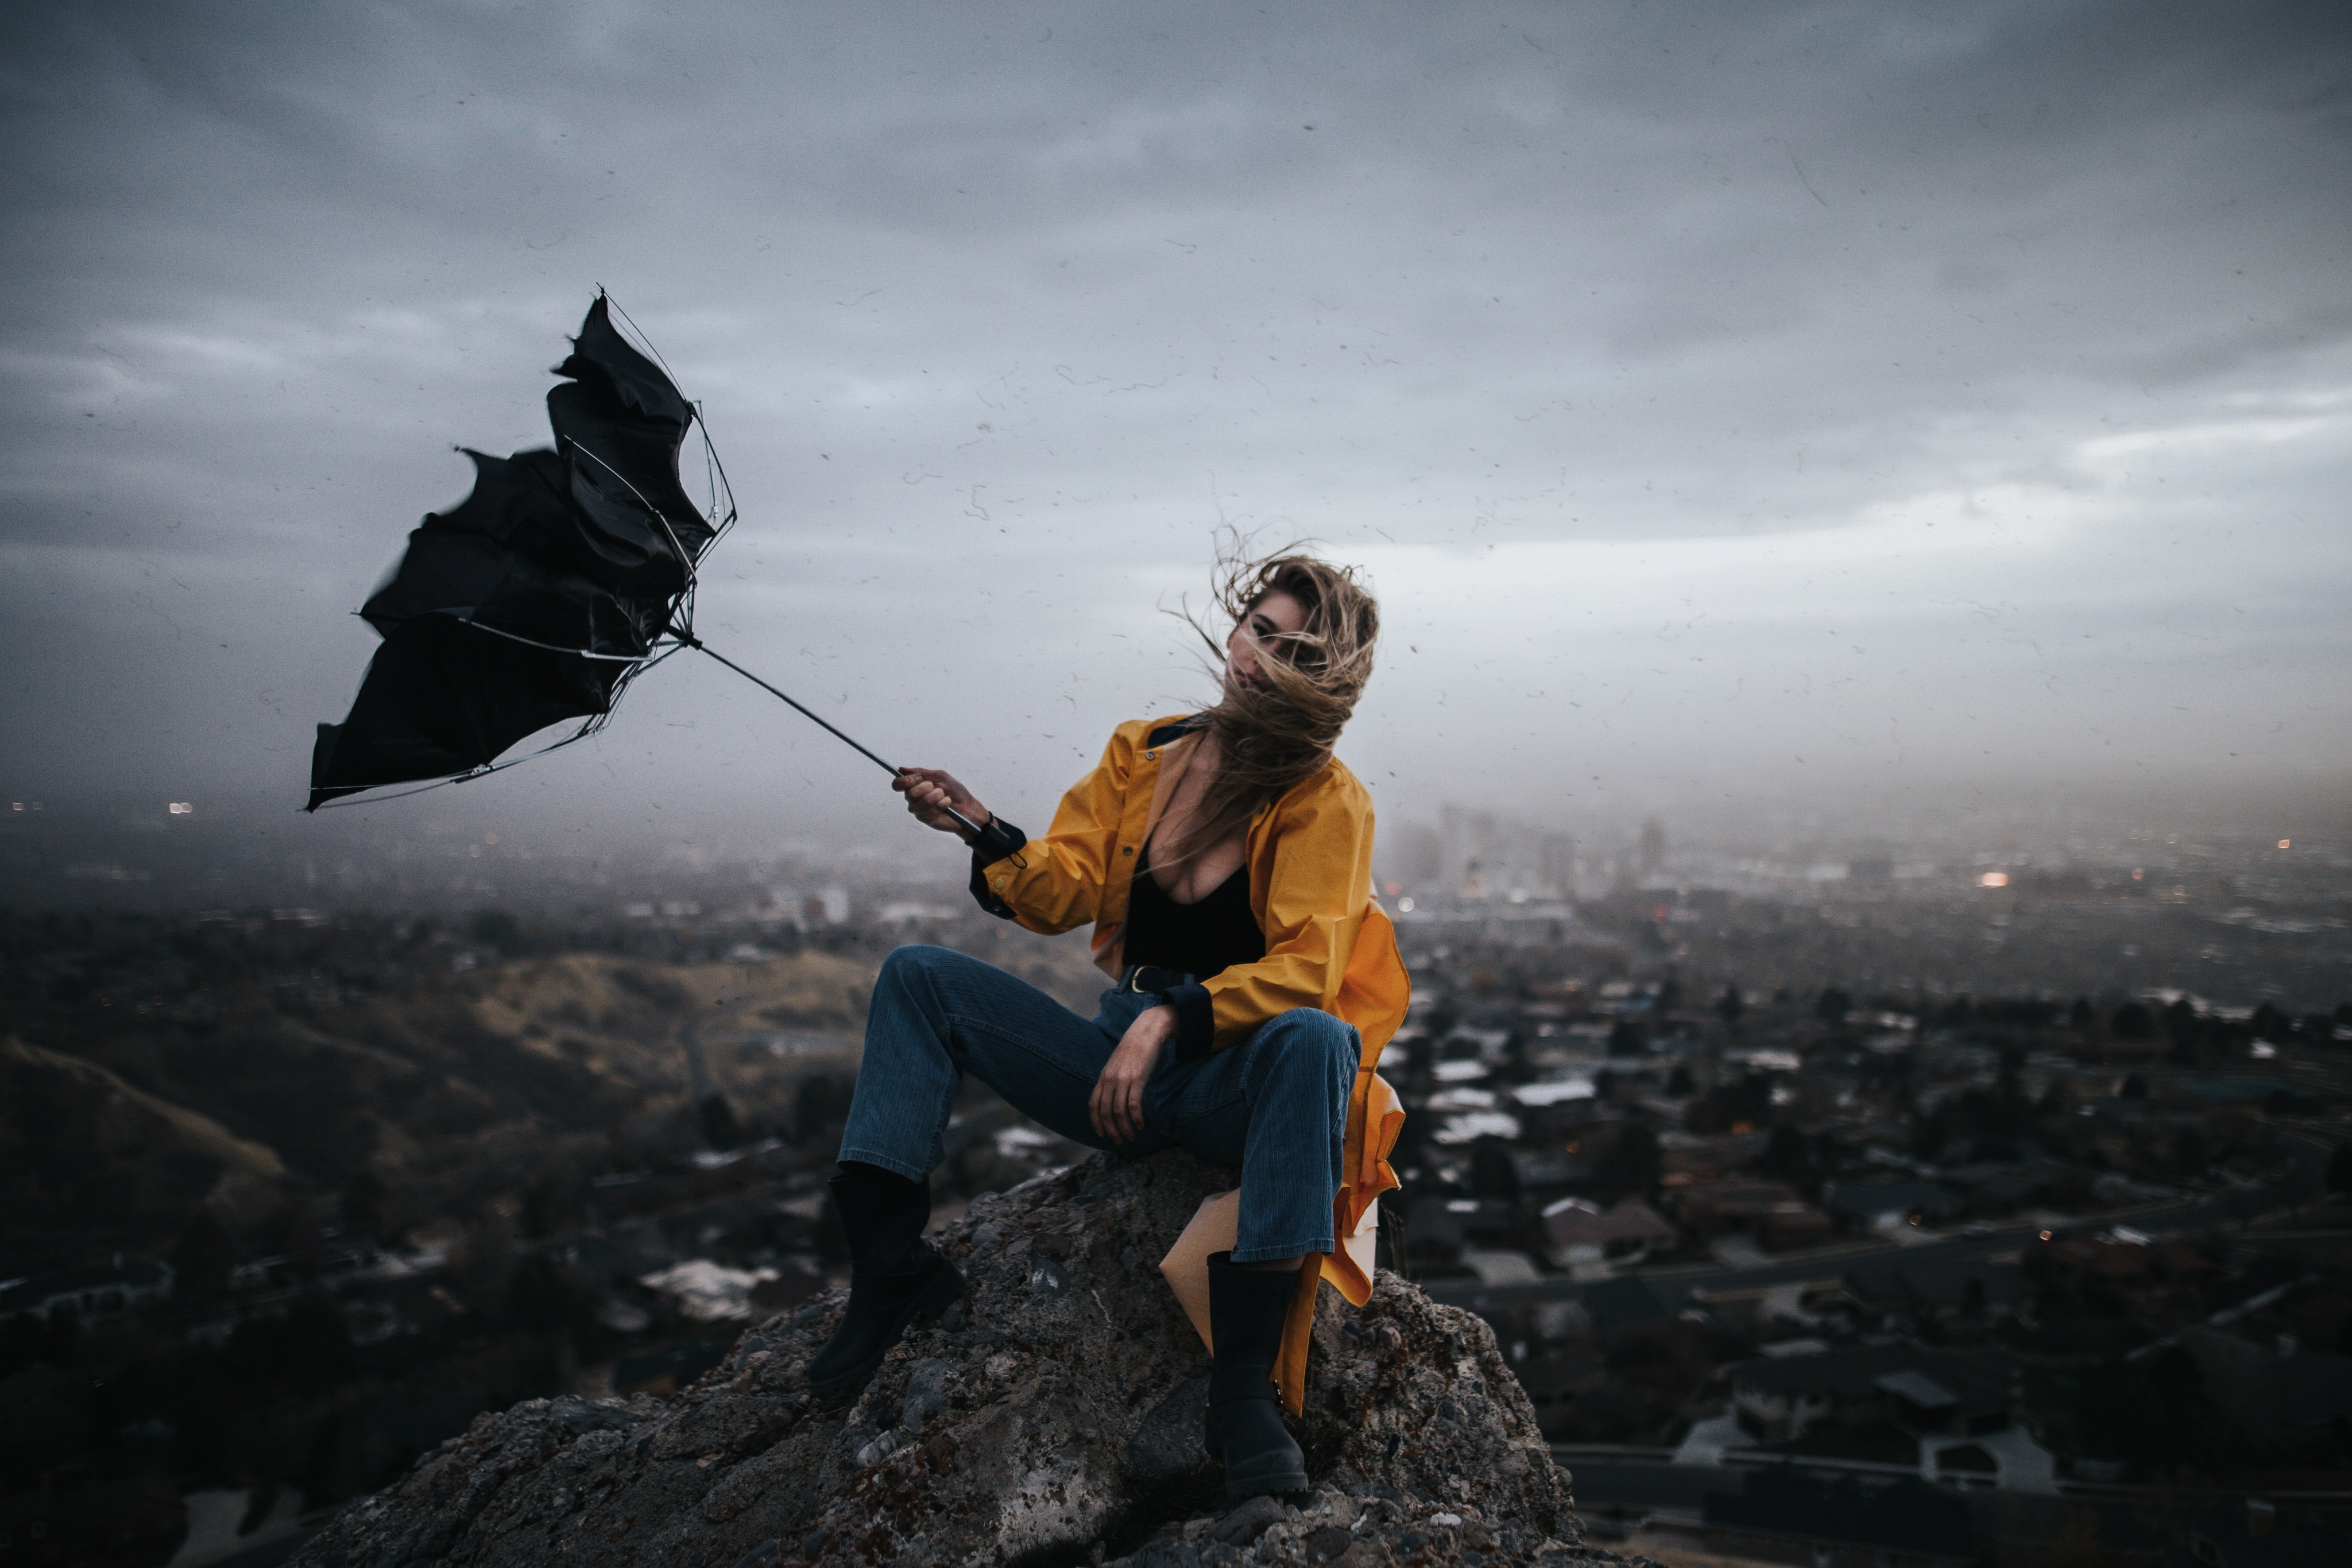 woman sitting on elevated rocky ground holding nearly flown umbrella overlooking city